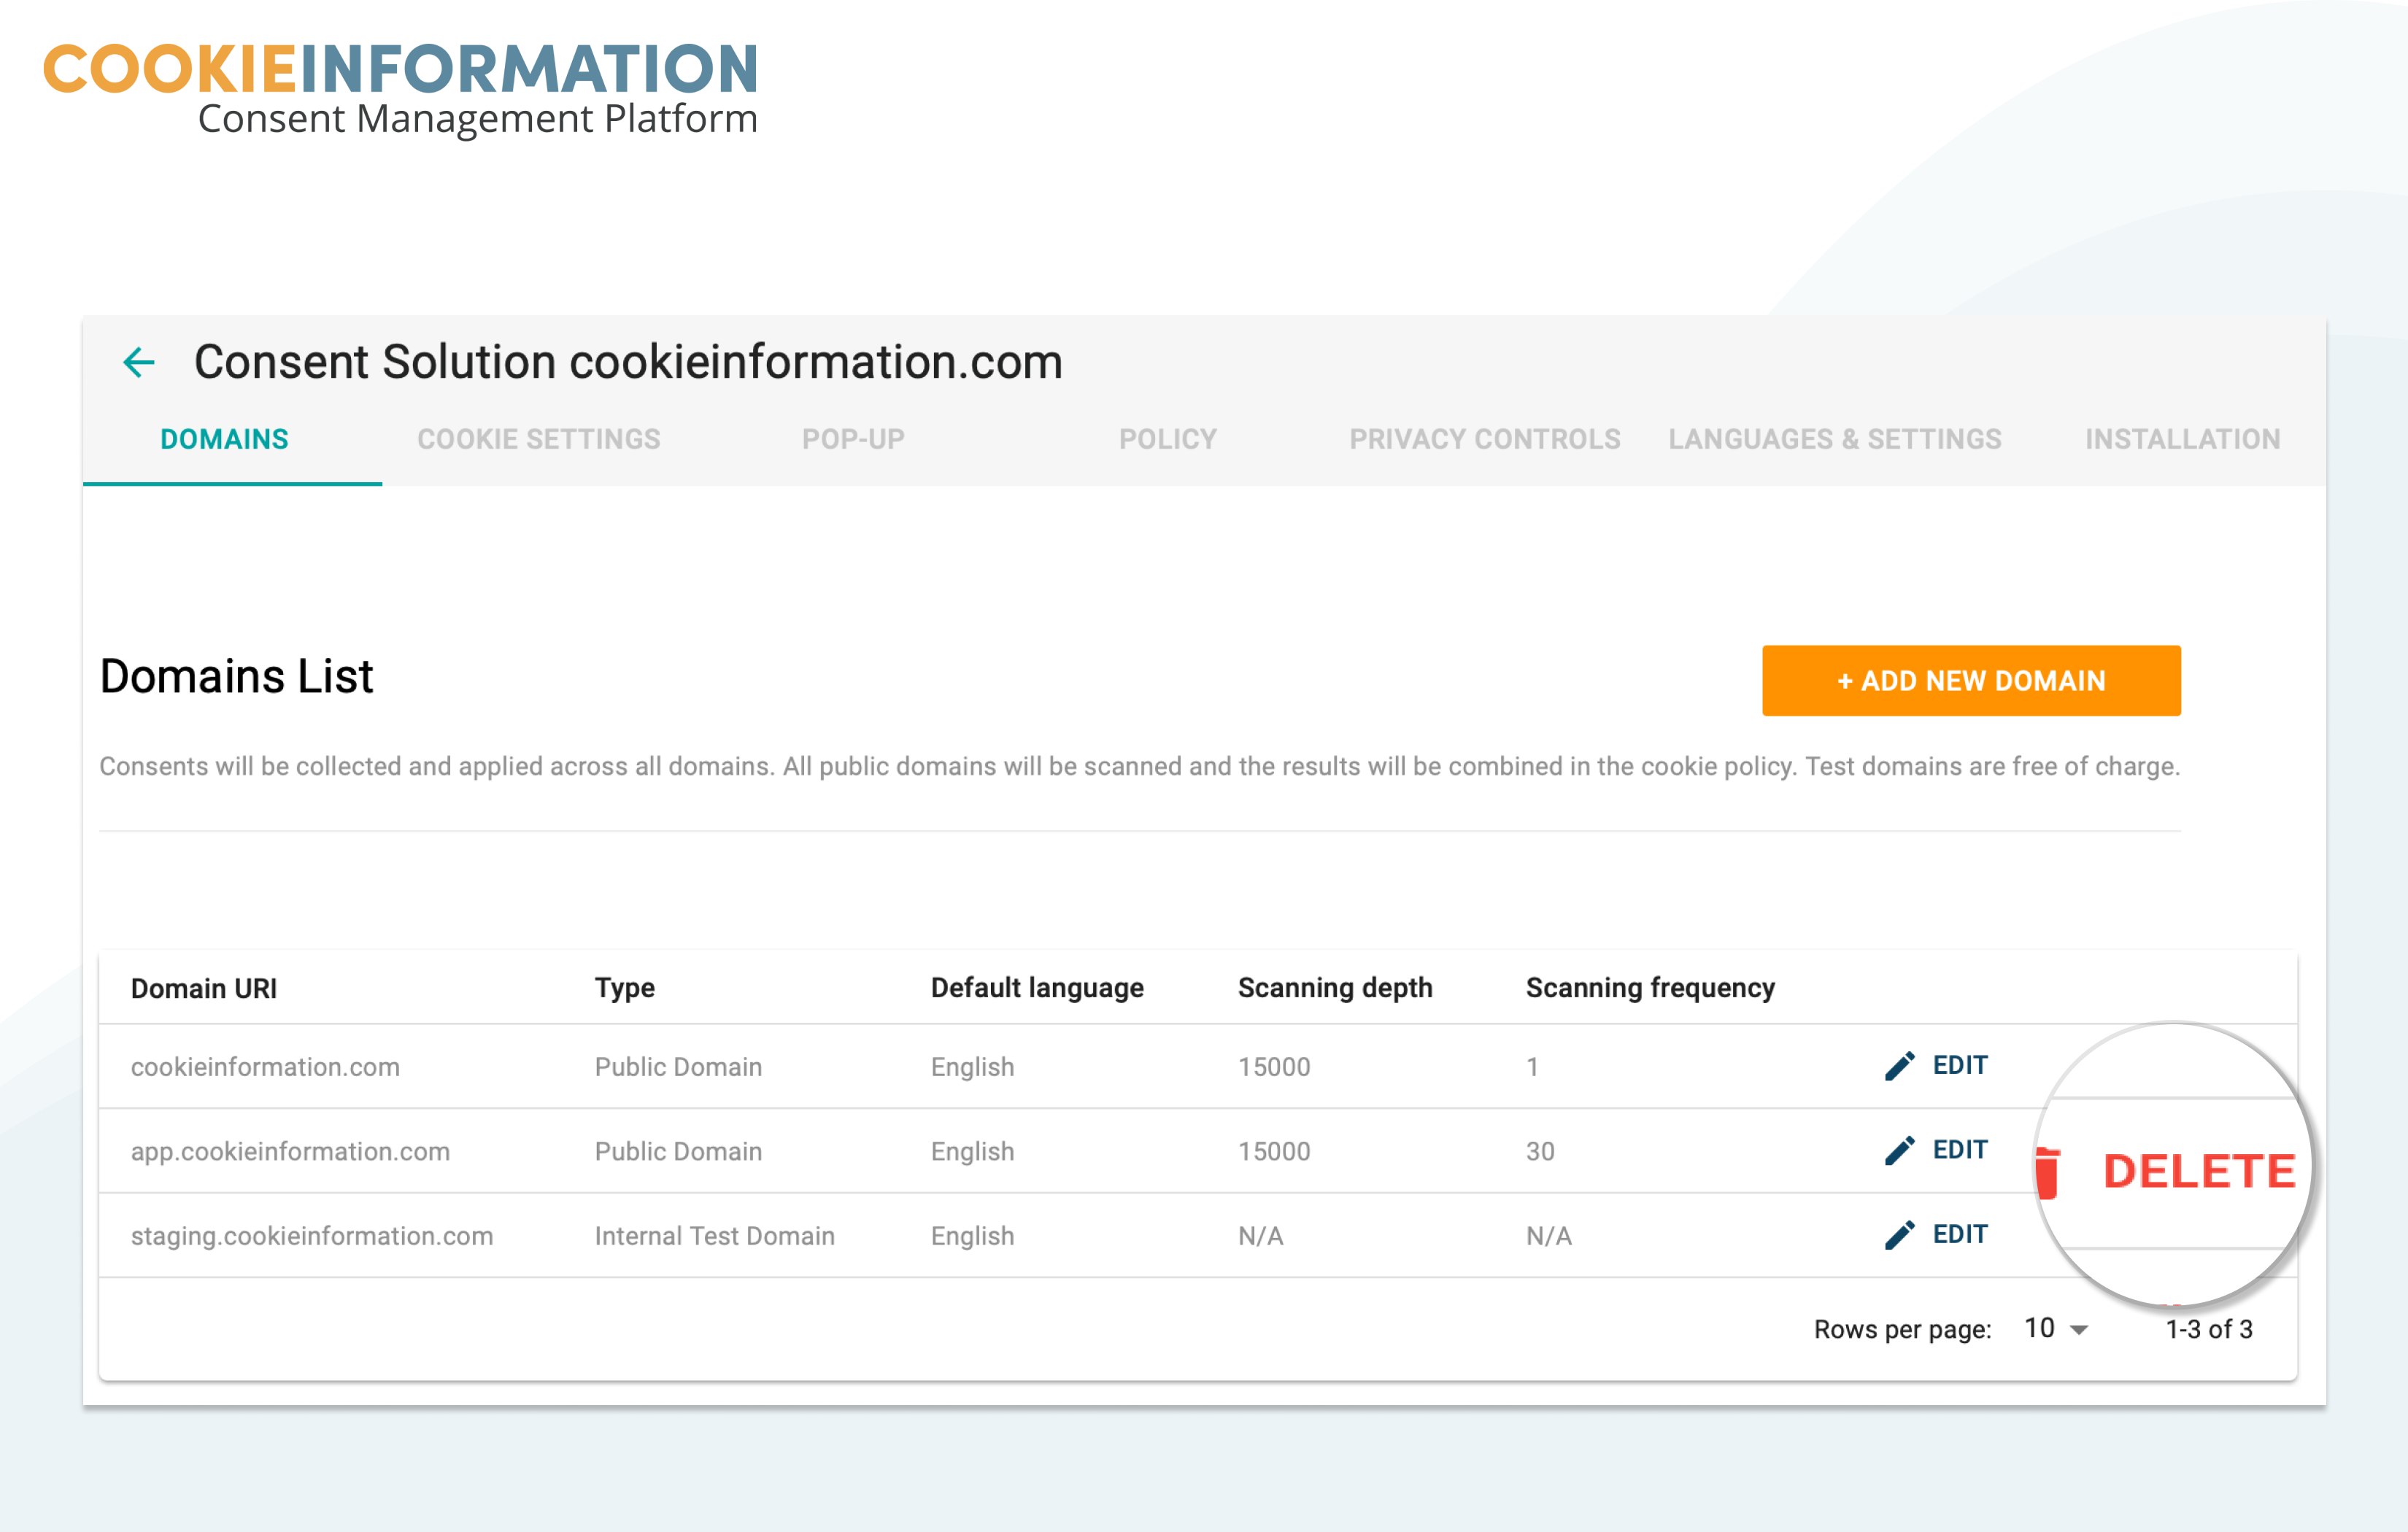 Deleting a domain in Cookie Information Platform